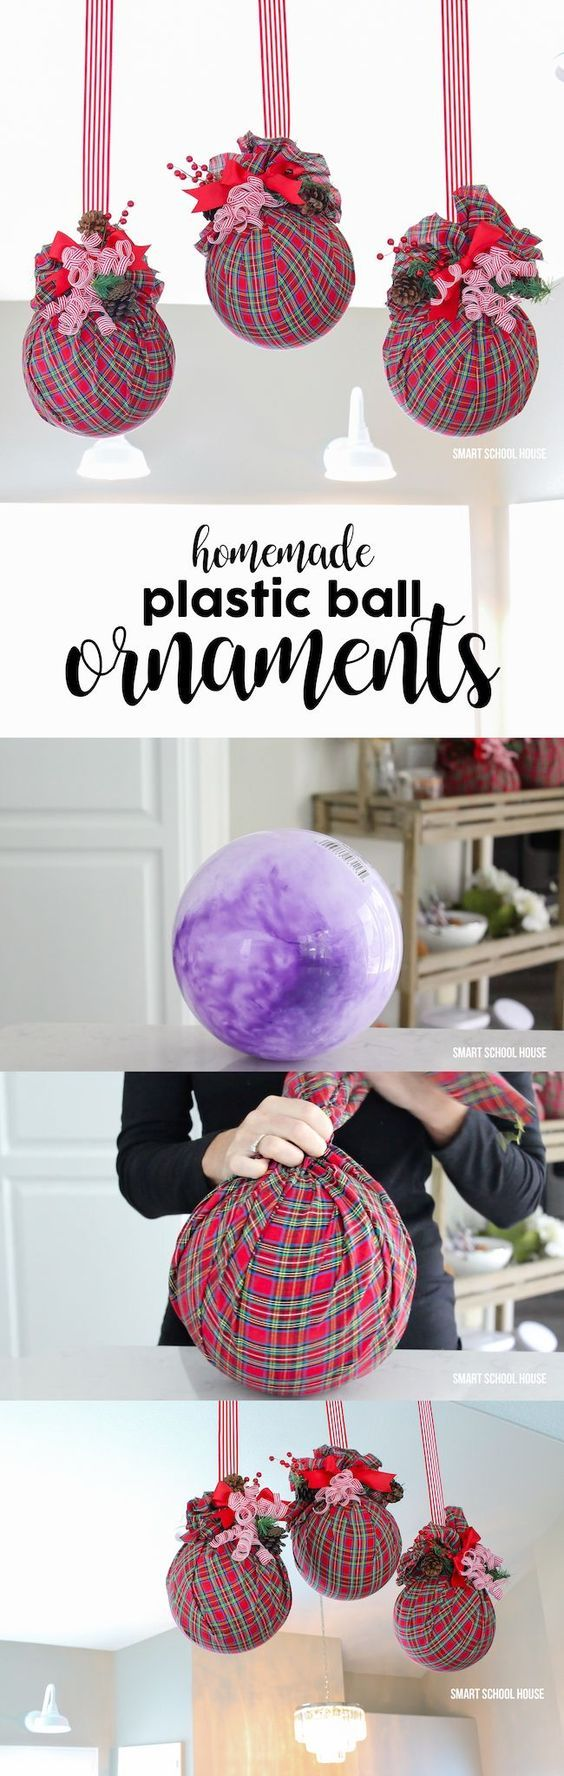 AMAZING and BIG unbreakable plastic ball ornaments for Christmas! Use a plastic ball (the ones found in the toy section for a dollar or so). Put them in your tree, around the house, or hang them with ribbon! Untie, save the supplies, and get a new ball fo